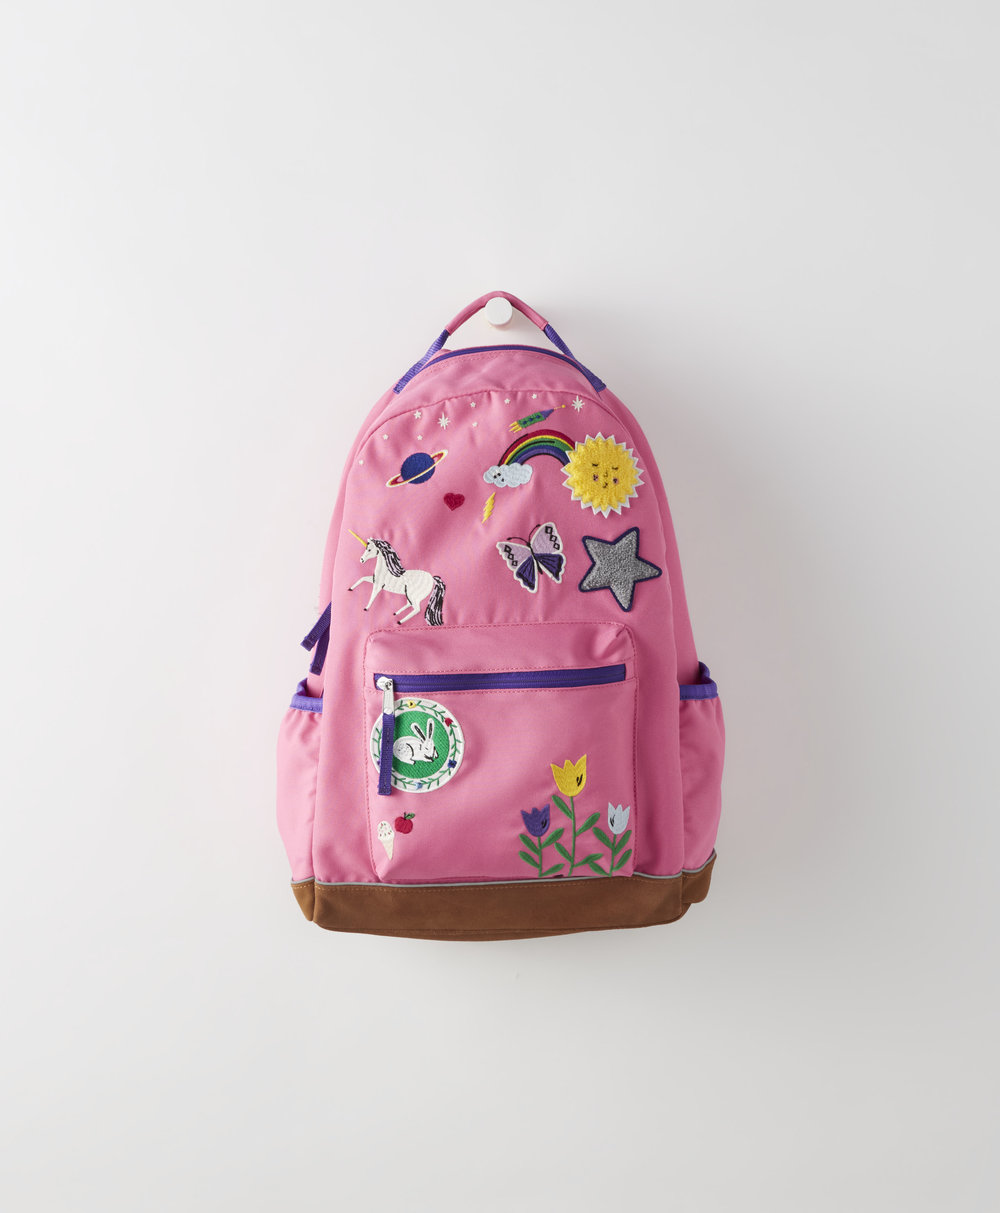 Kids Backpacks - Hanna Andersson